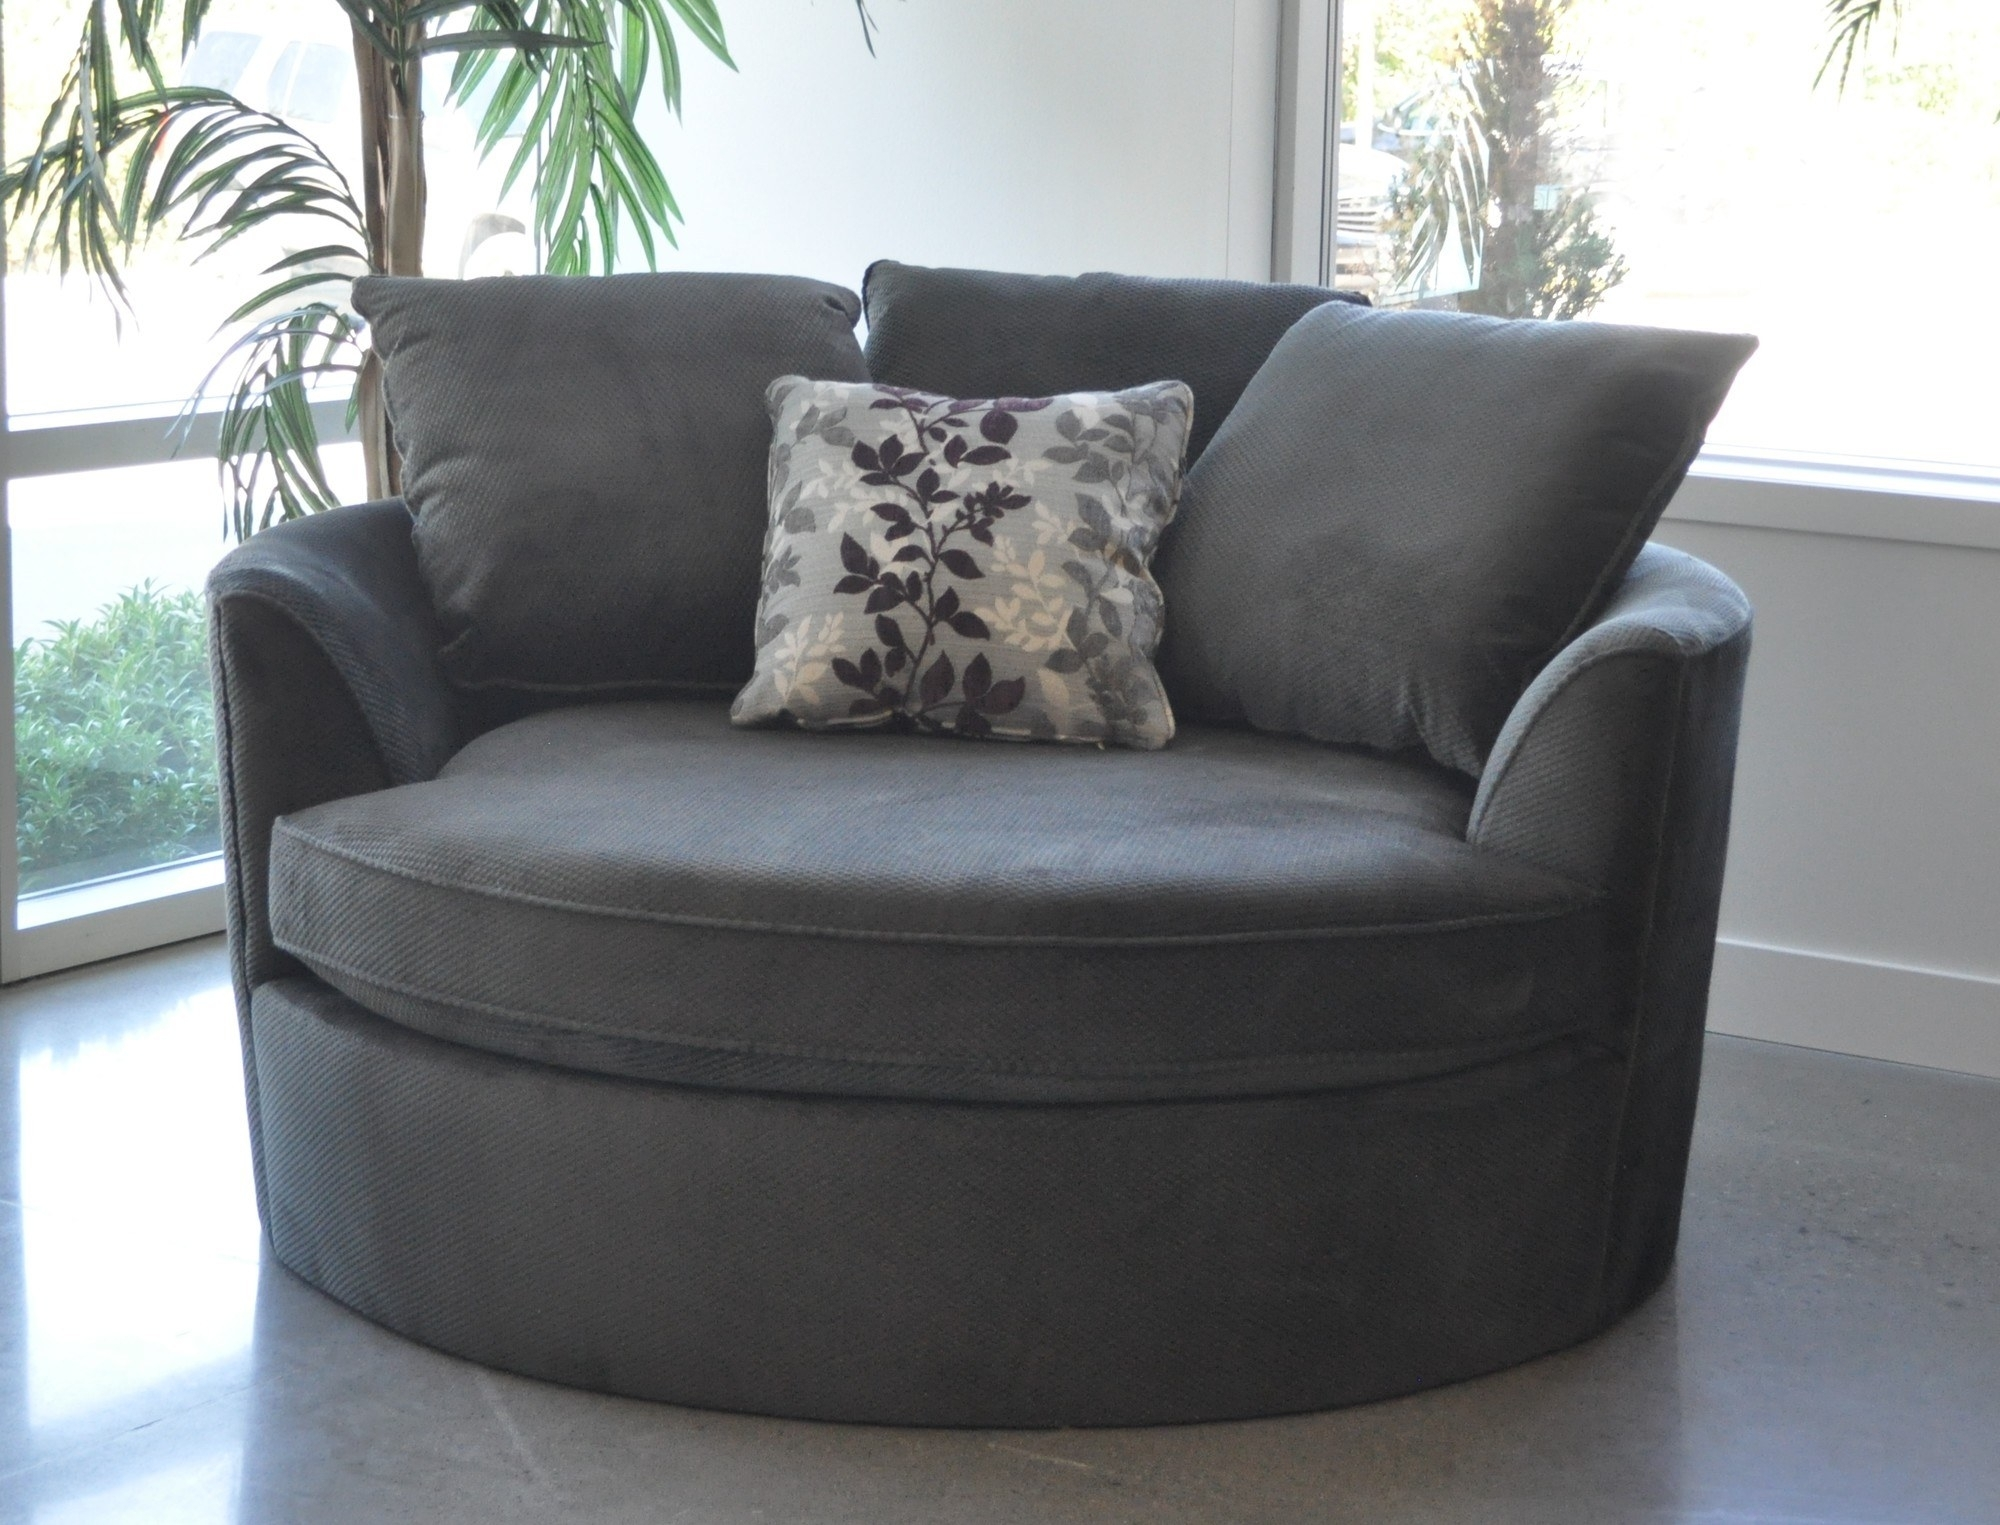 2017 Chaise Lounge Computer Chairs Regarding Lounge Chair : Cheap Comfy Chairs Chaise Furniture Small (View 1 of 15)